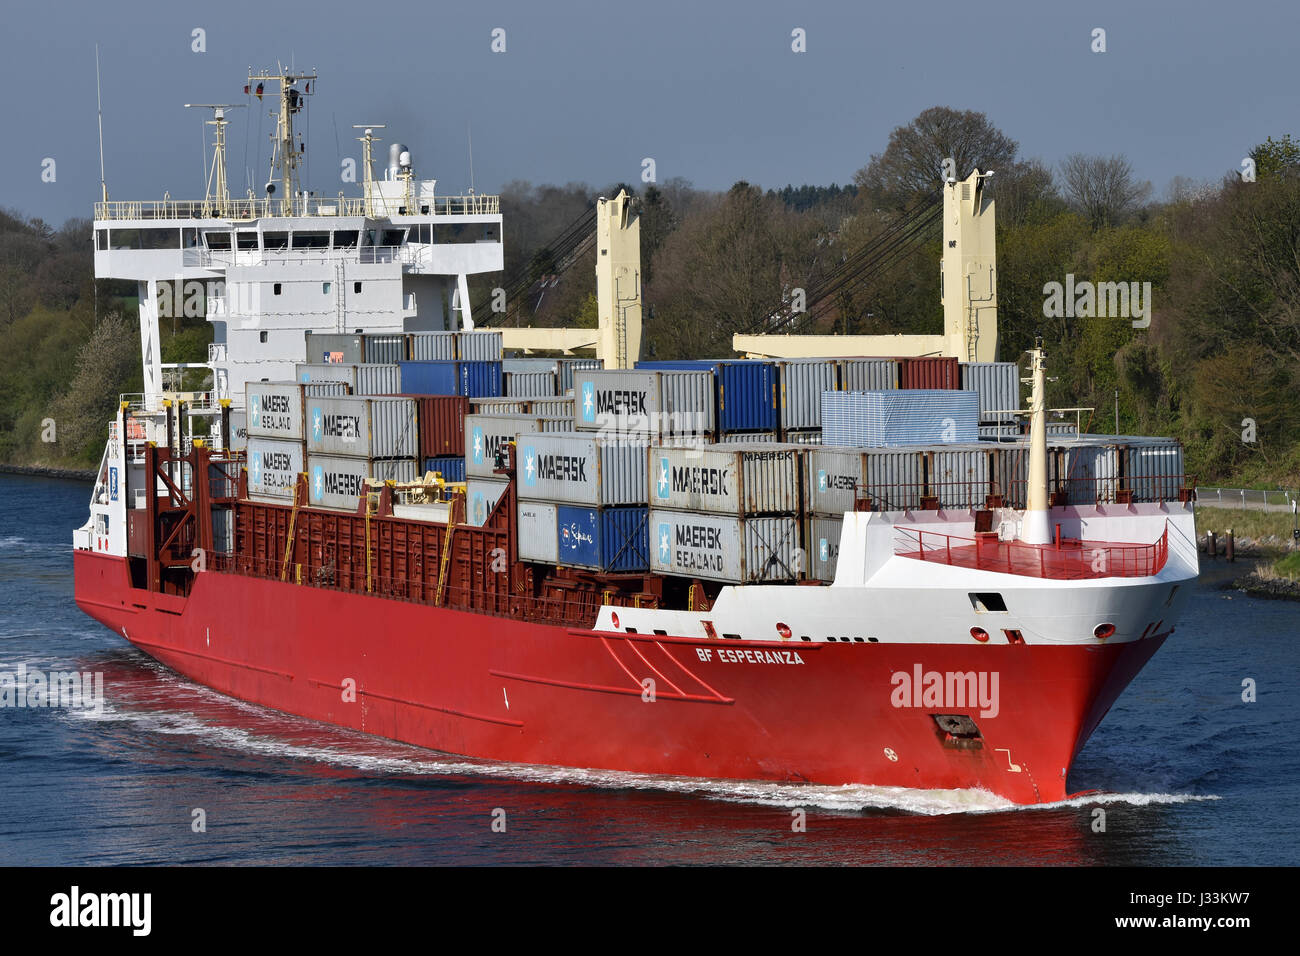 Feedervessel BF Esperanza Stock Photo